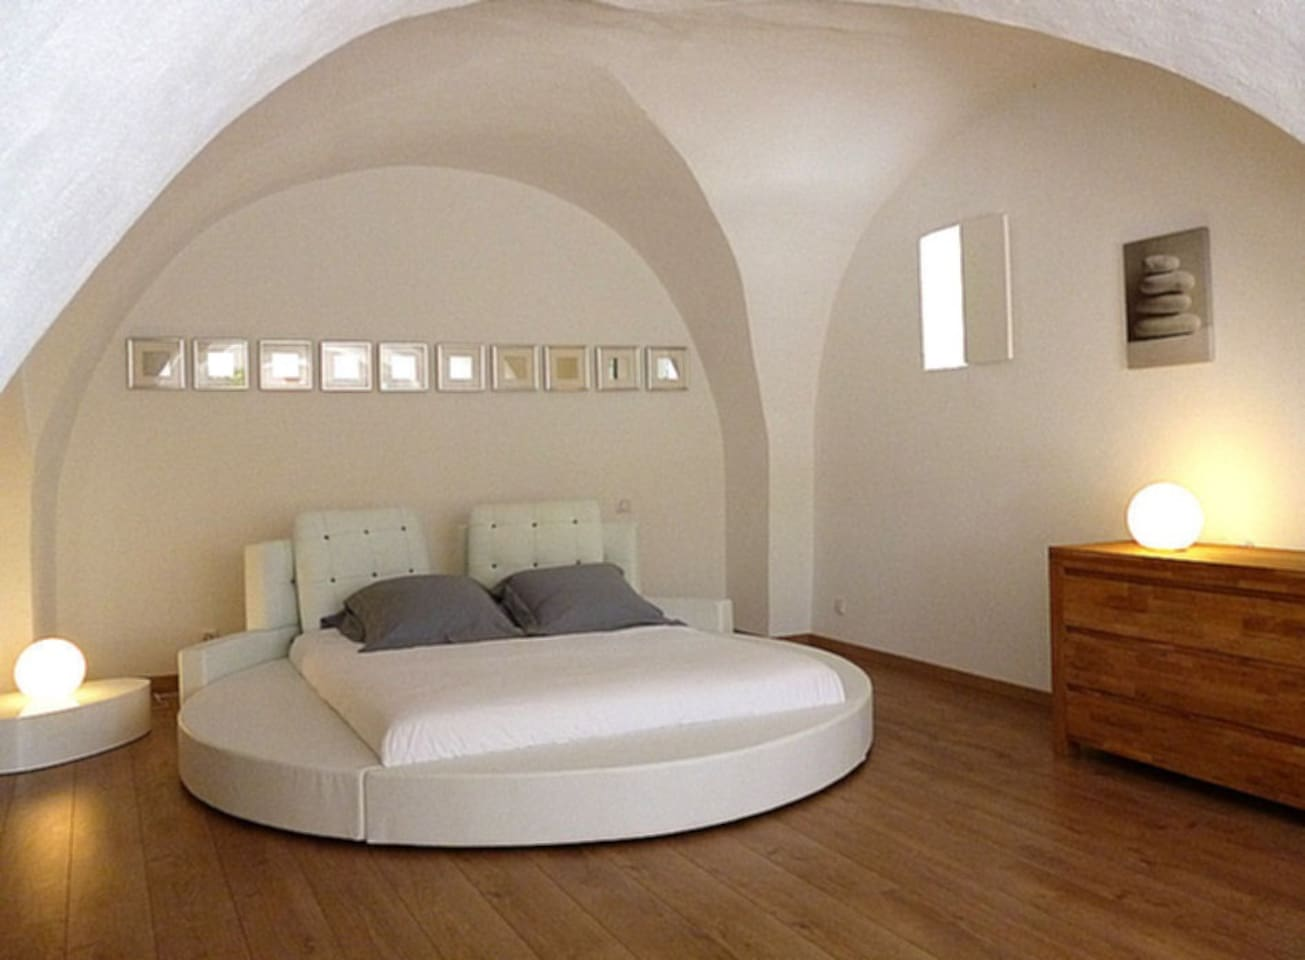 King size round bed in a large voulted bedroom